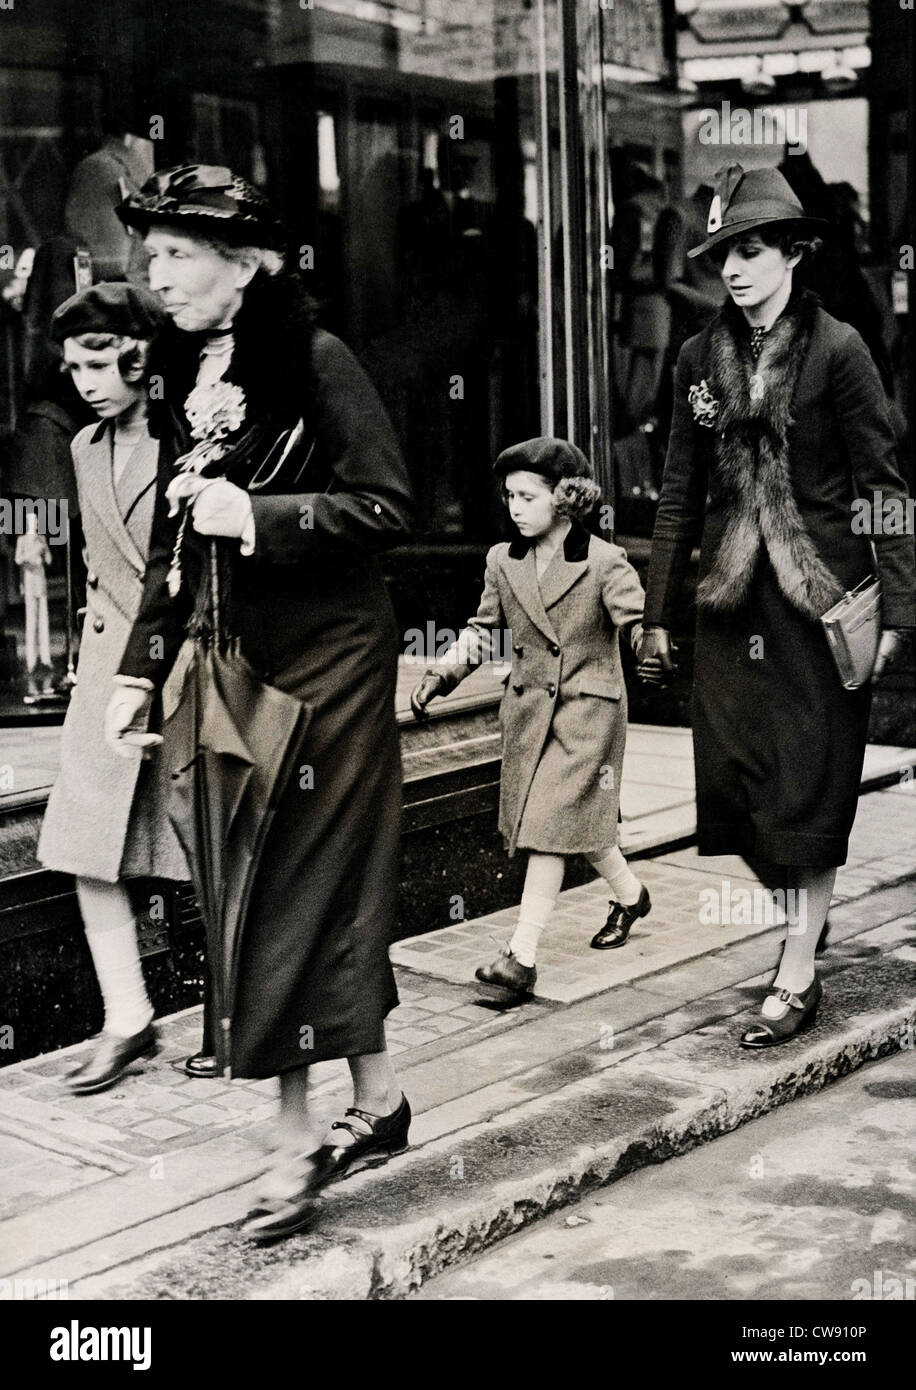 British princesses had their first ride on 'Tube' 1939 - Stock Image